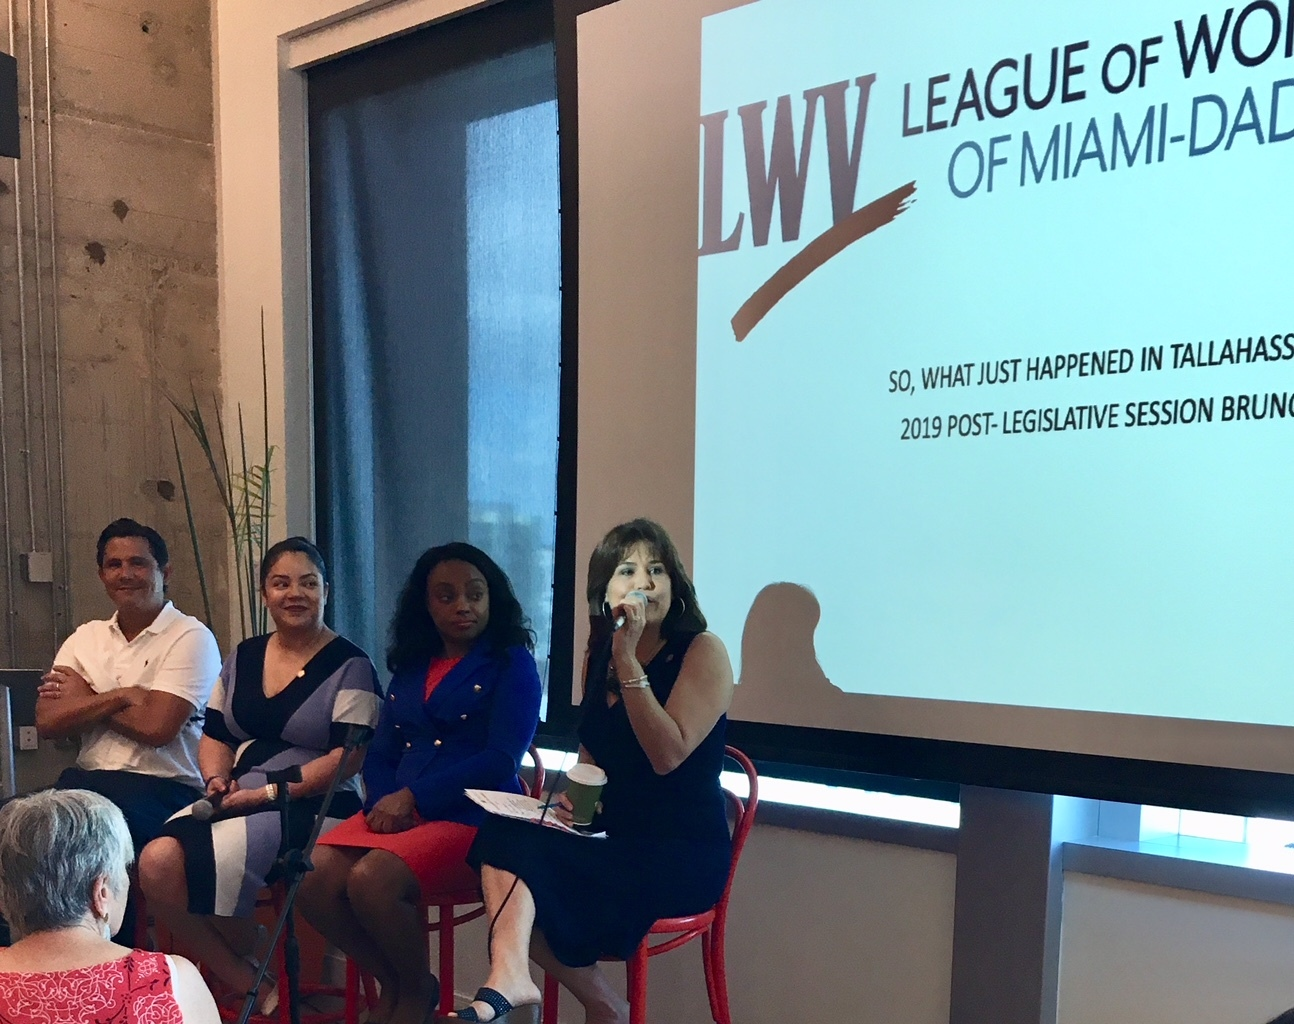 Senator Jason Pizzo, Representative Cindy Polo, Representative Dotie Joseph, and Senator Annette Taddeo spoke at LWVMD's 2019 Legislative Debrief.